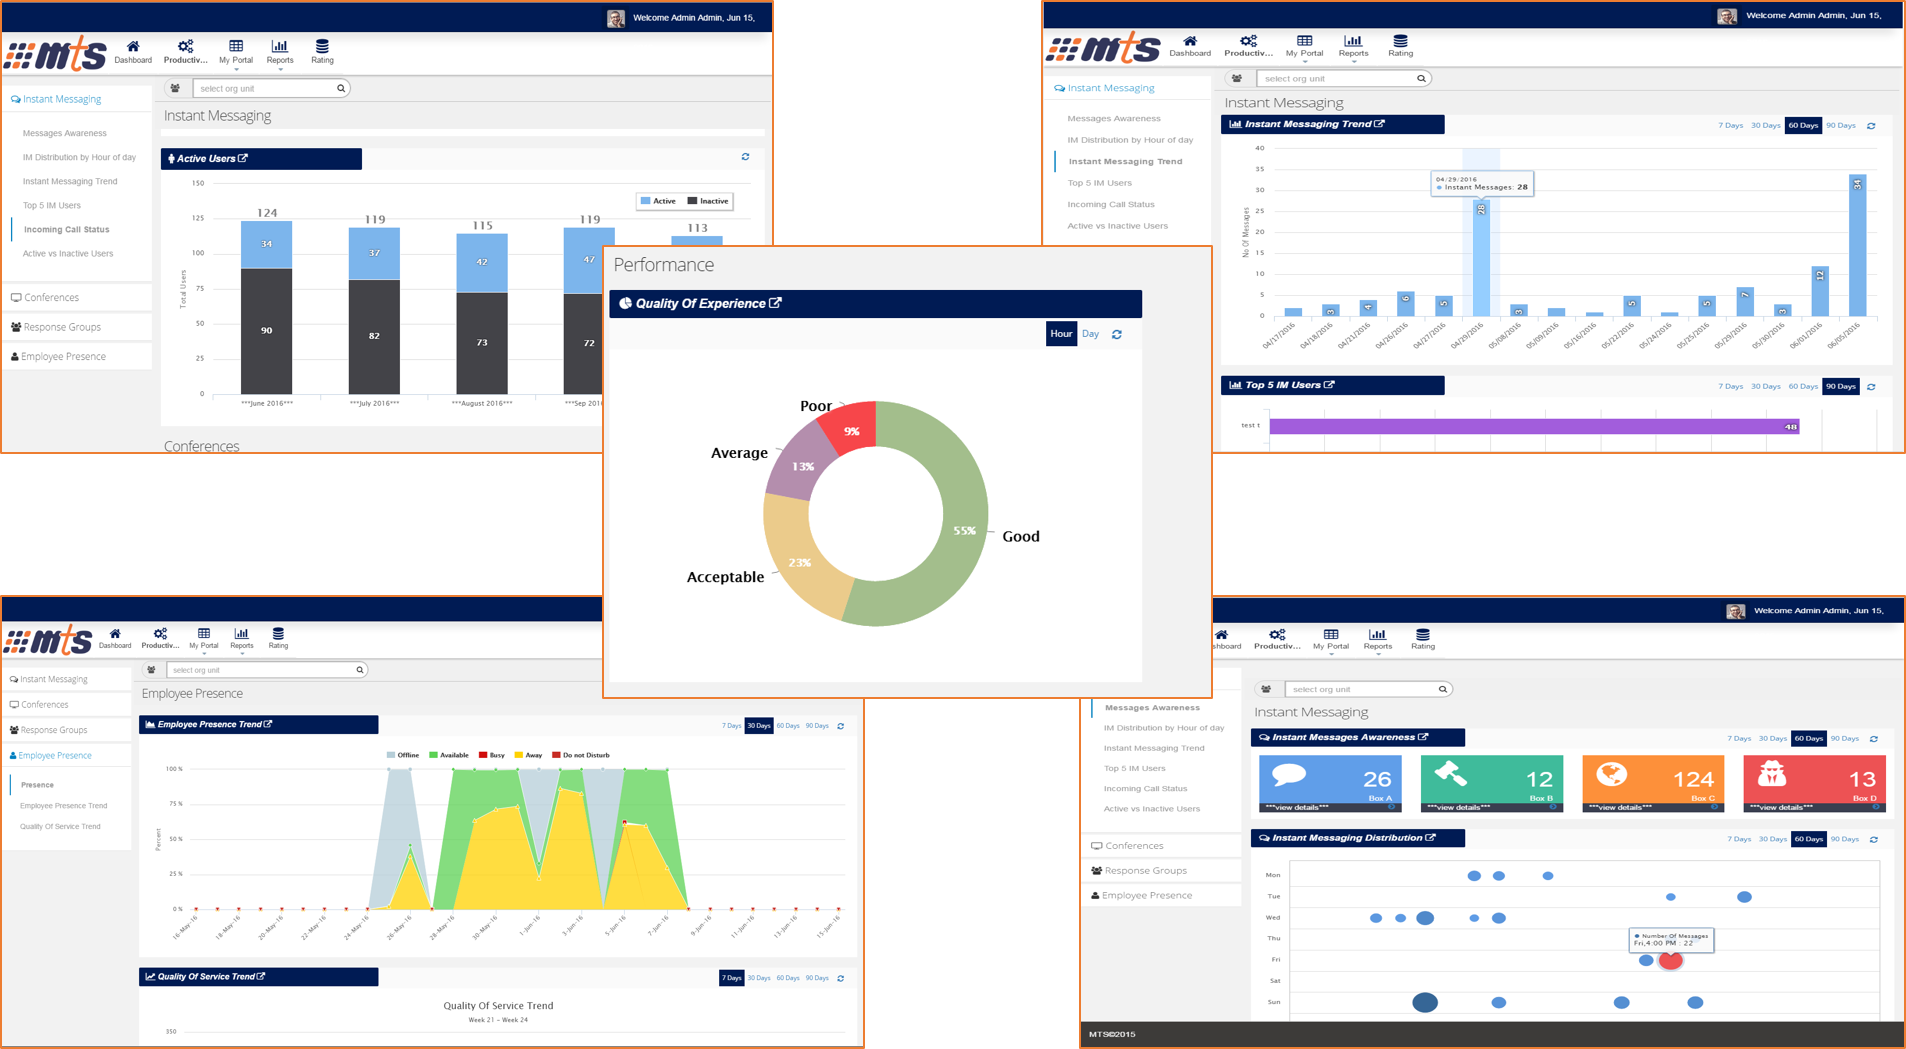 TEM Suite Skype for Business Dashboards